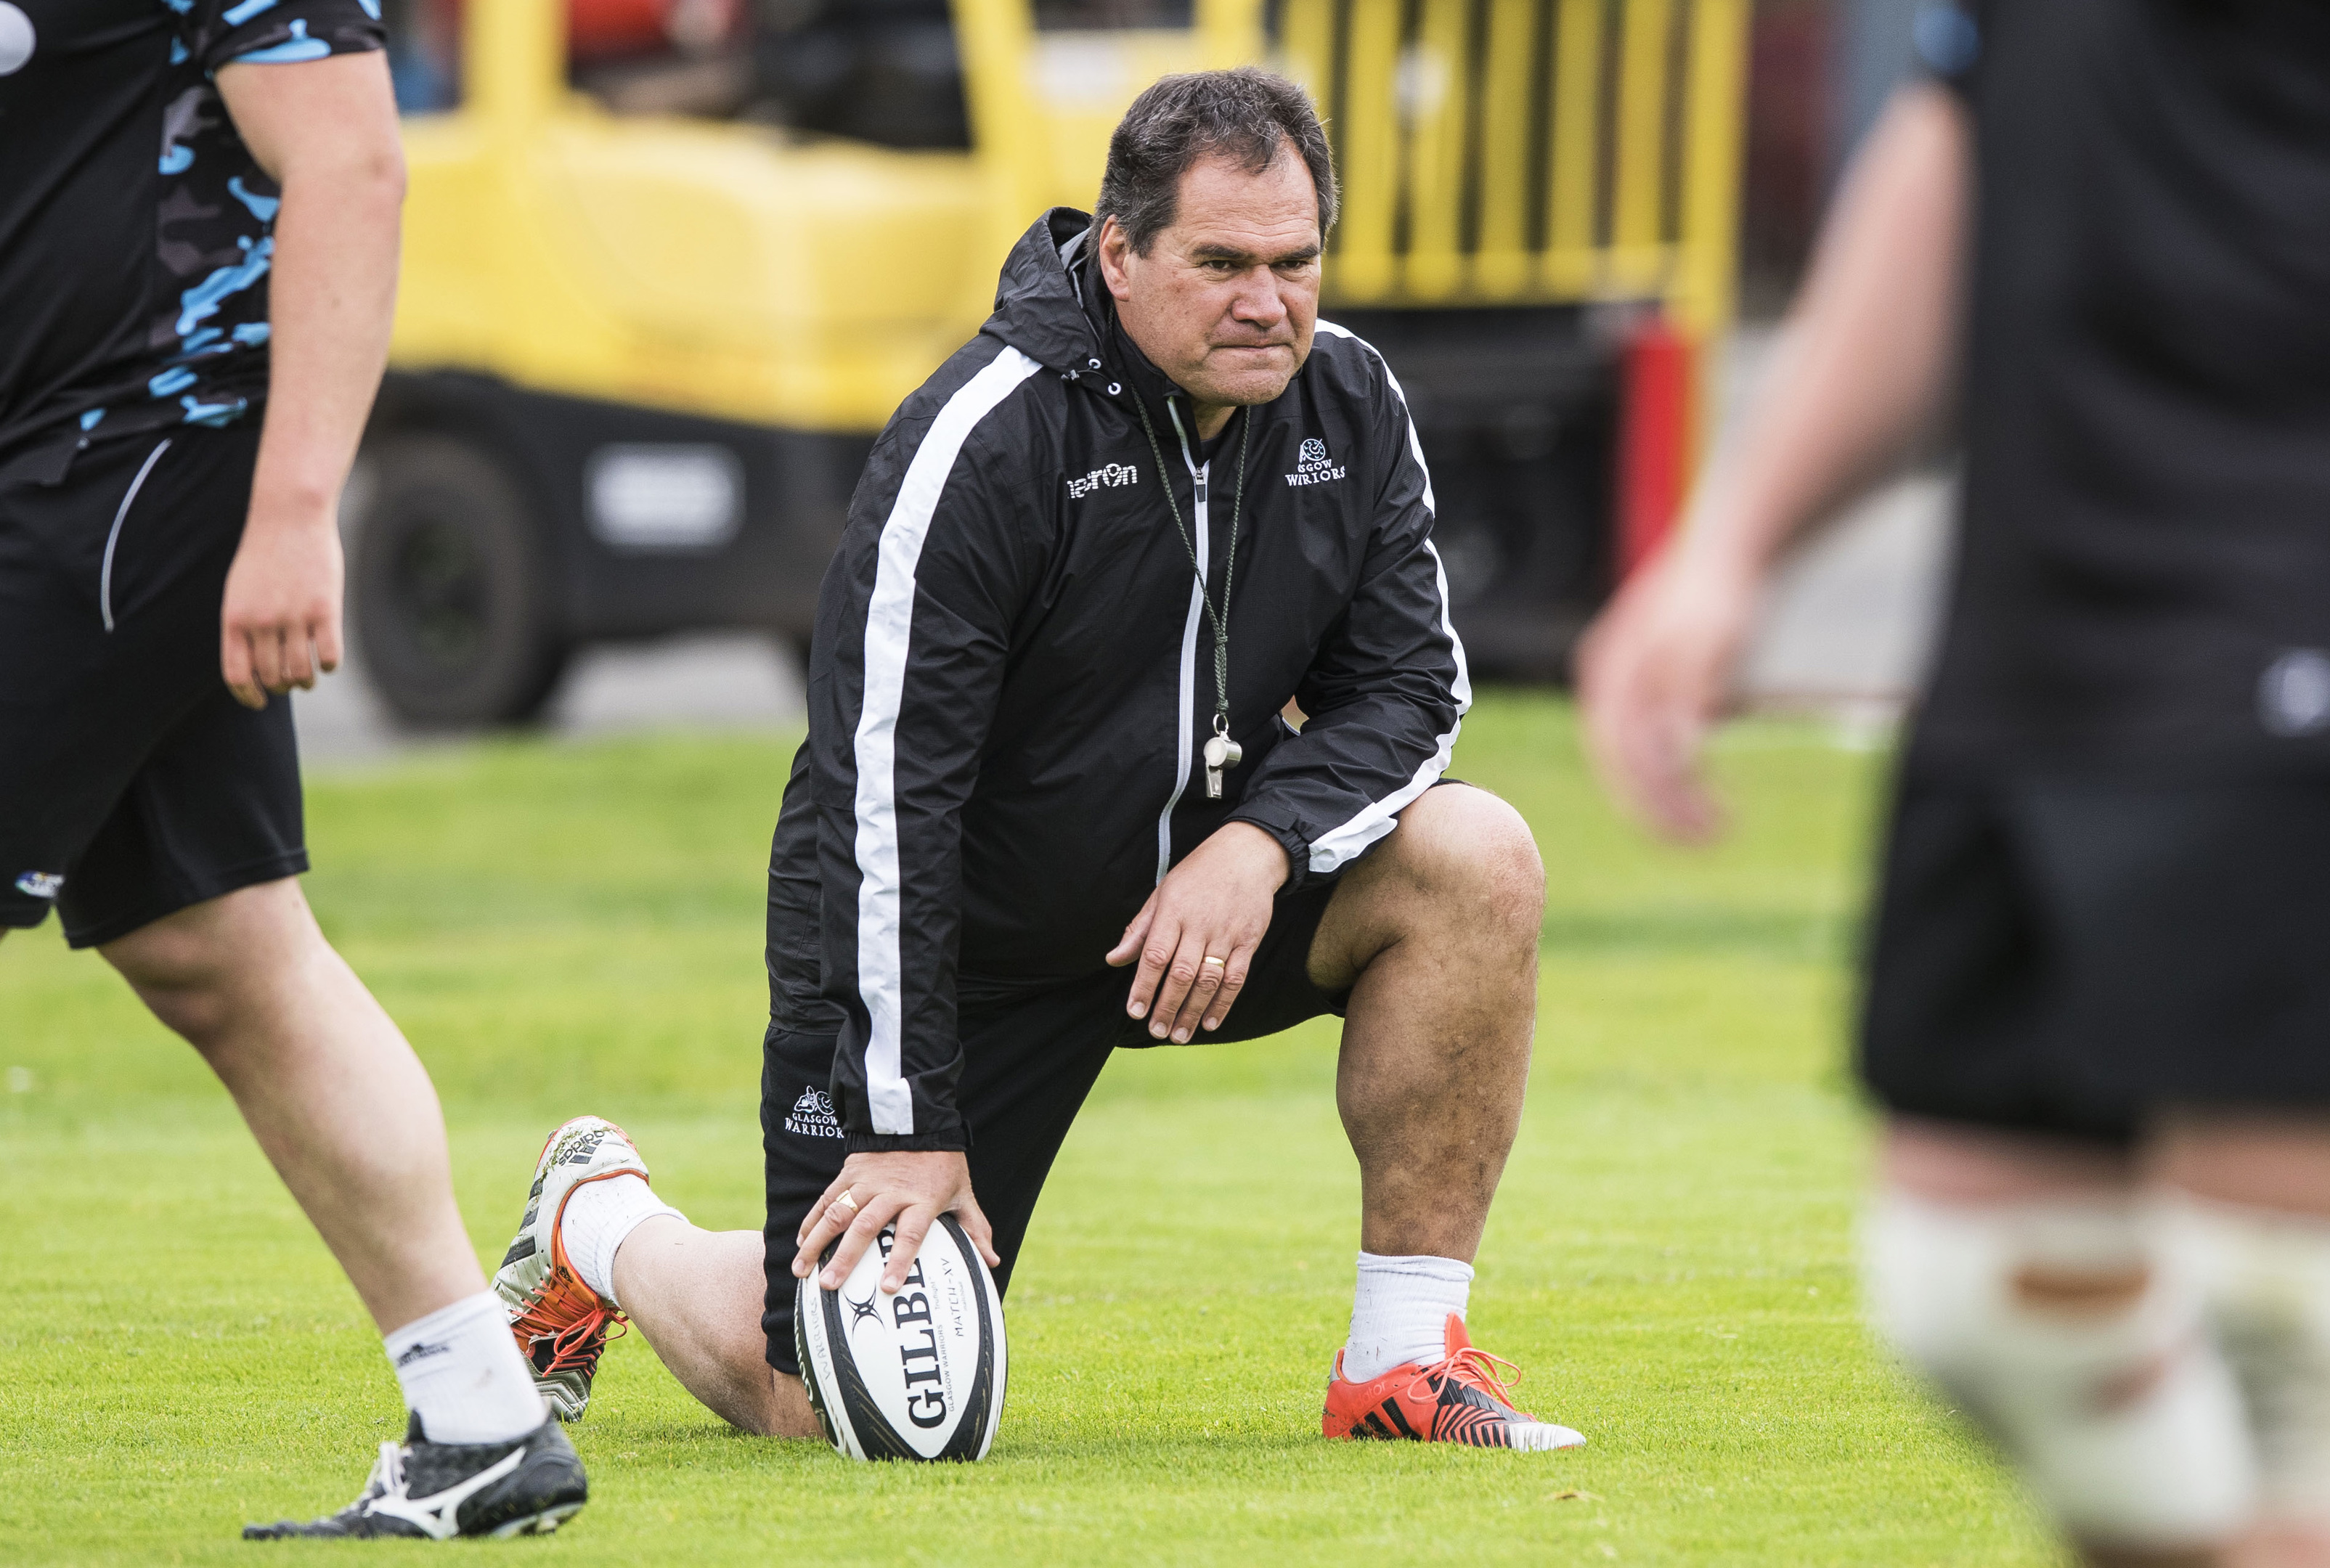 Glasgow Warriors' outgoing head coach Dave Rennie.